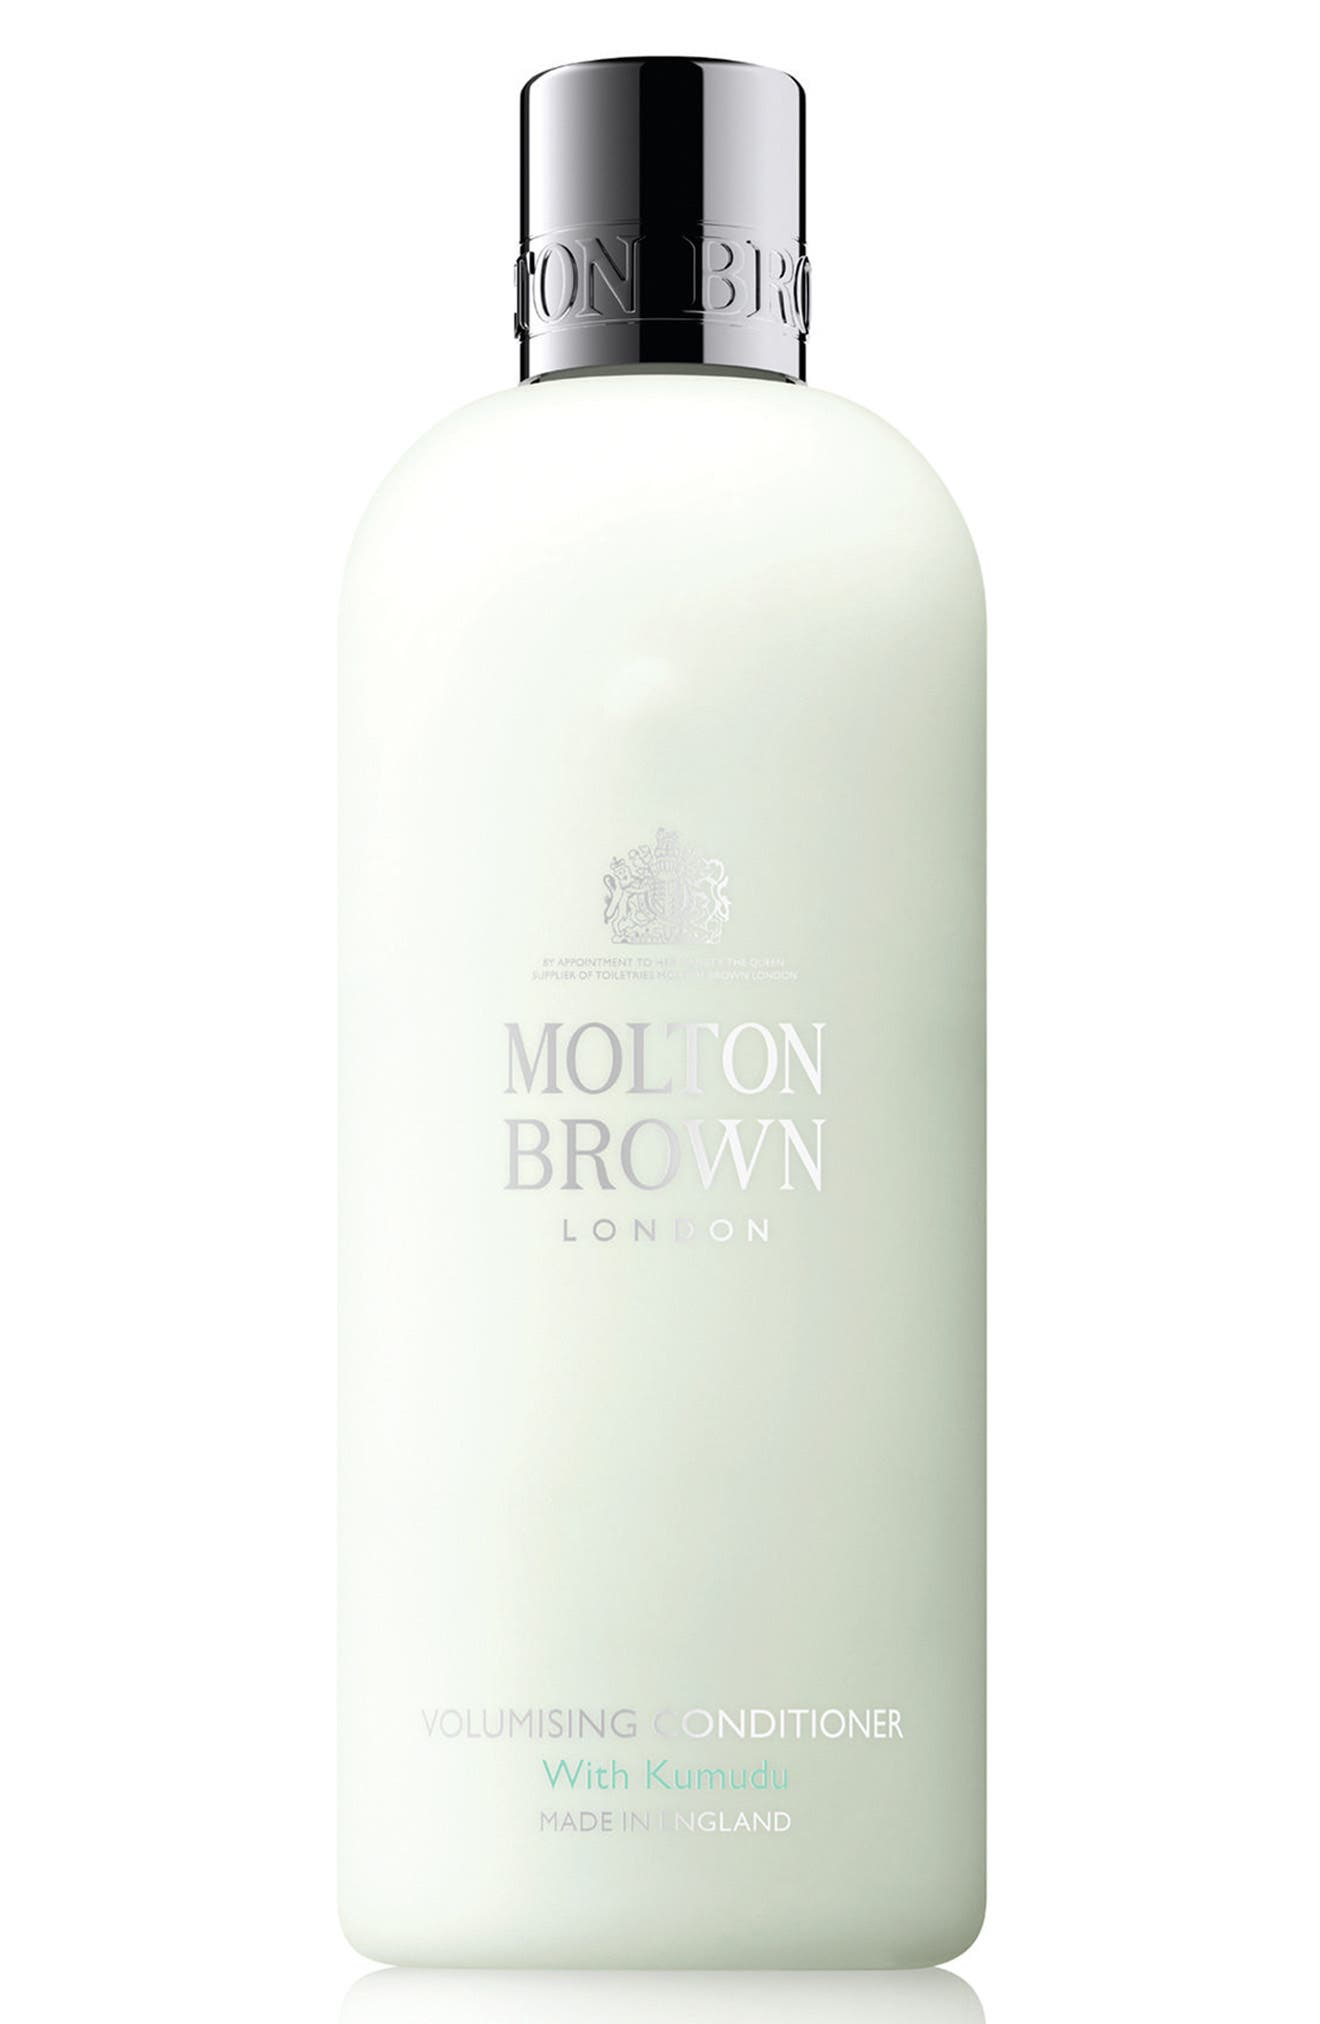 Alternate Image 1 Selected - MOLTON BROWN London Volumizing Conditioner with Kumudu